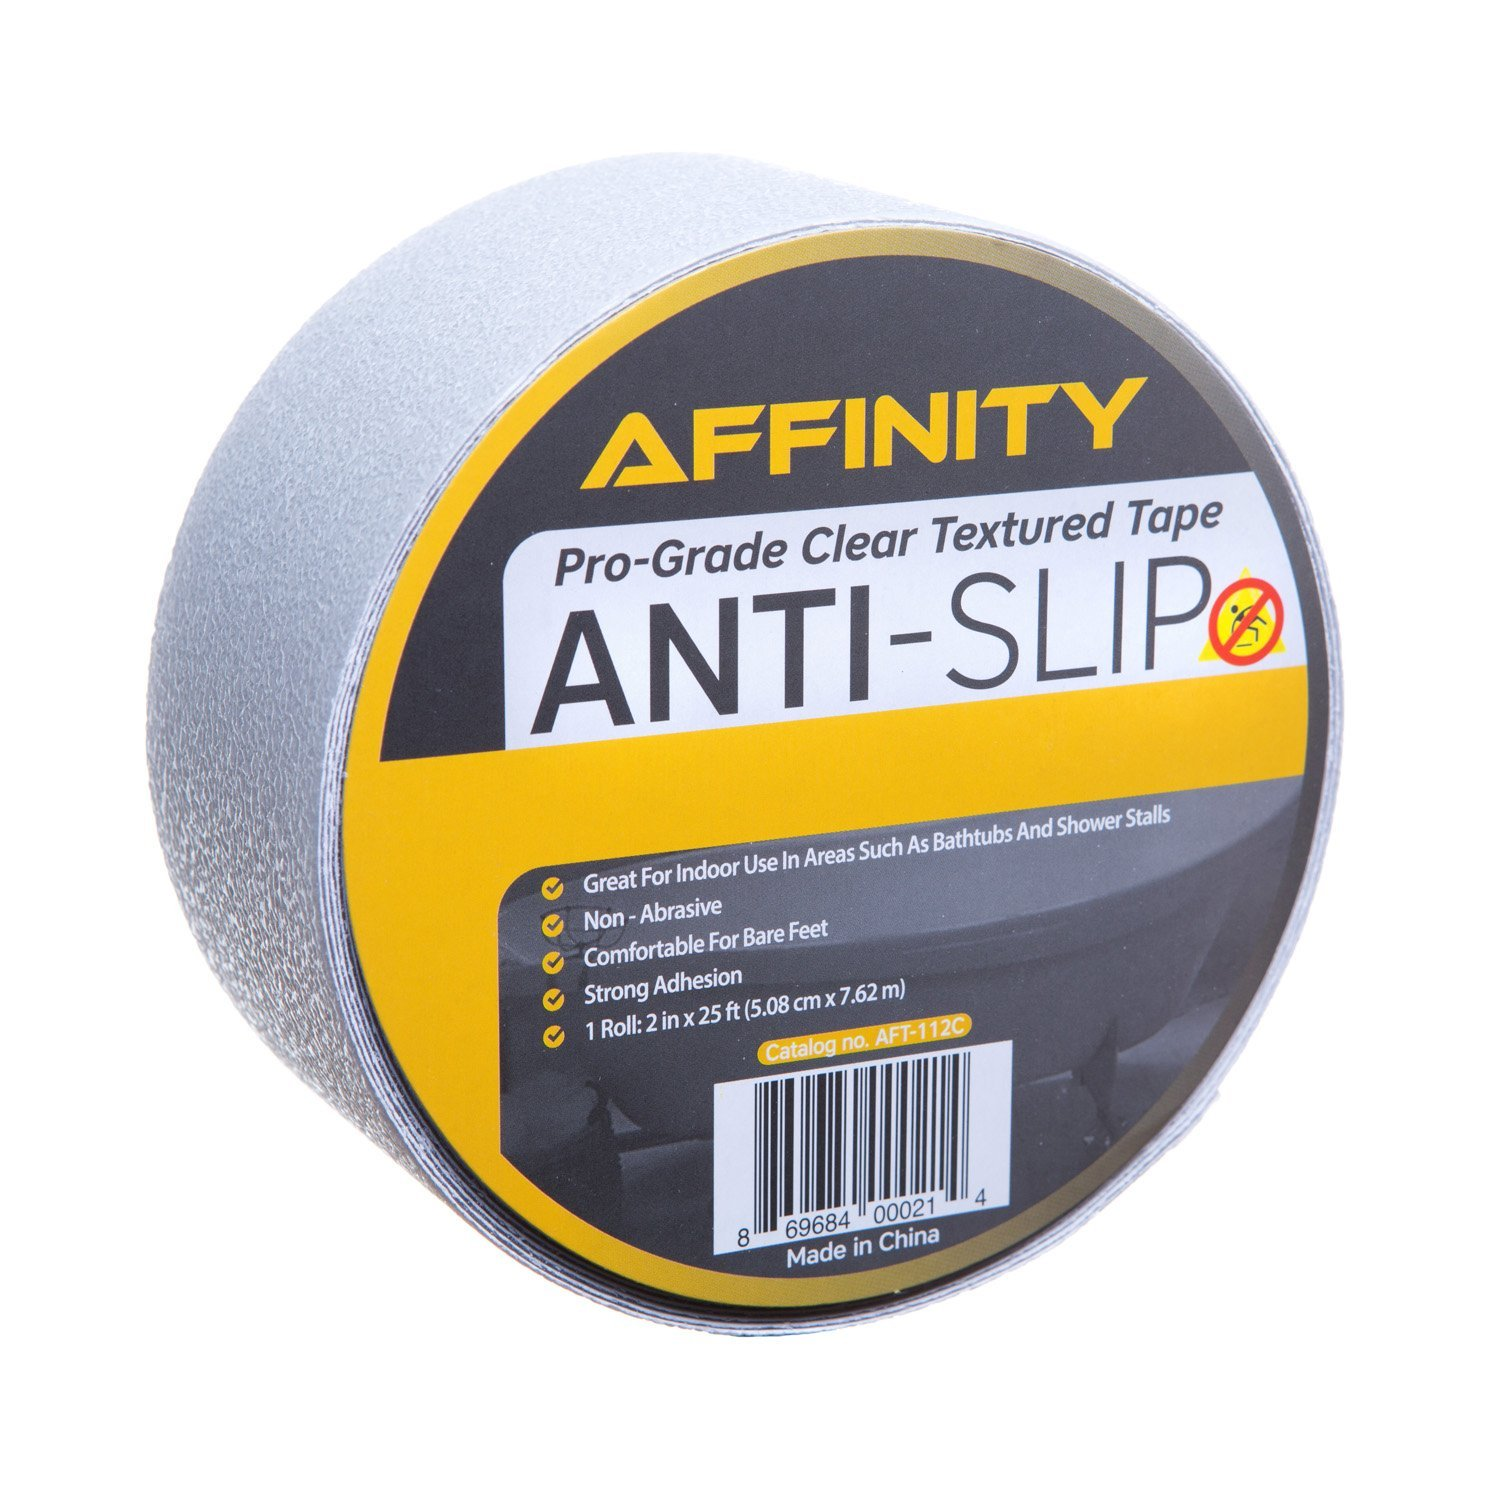 Amazon.com: AFFINITY Anti Slip Tape, Clear Textured Slip Resistant Safety  Tread, 25 Ft. Roll: Home U0026 Kitchen